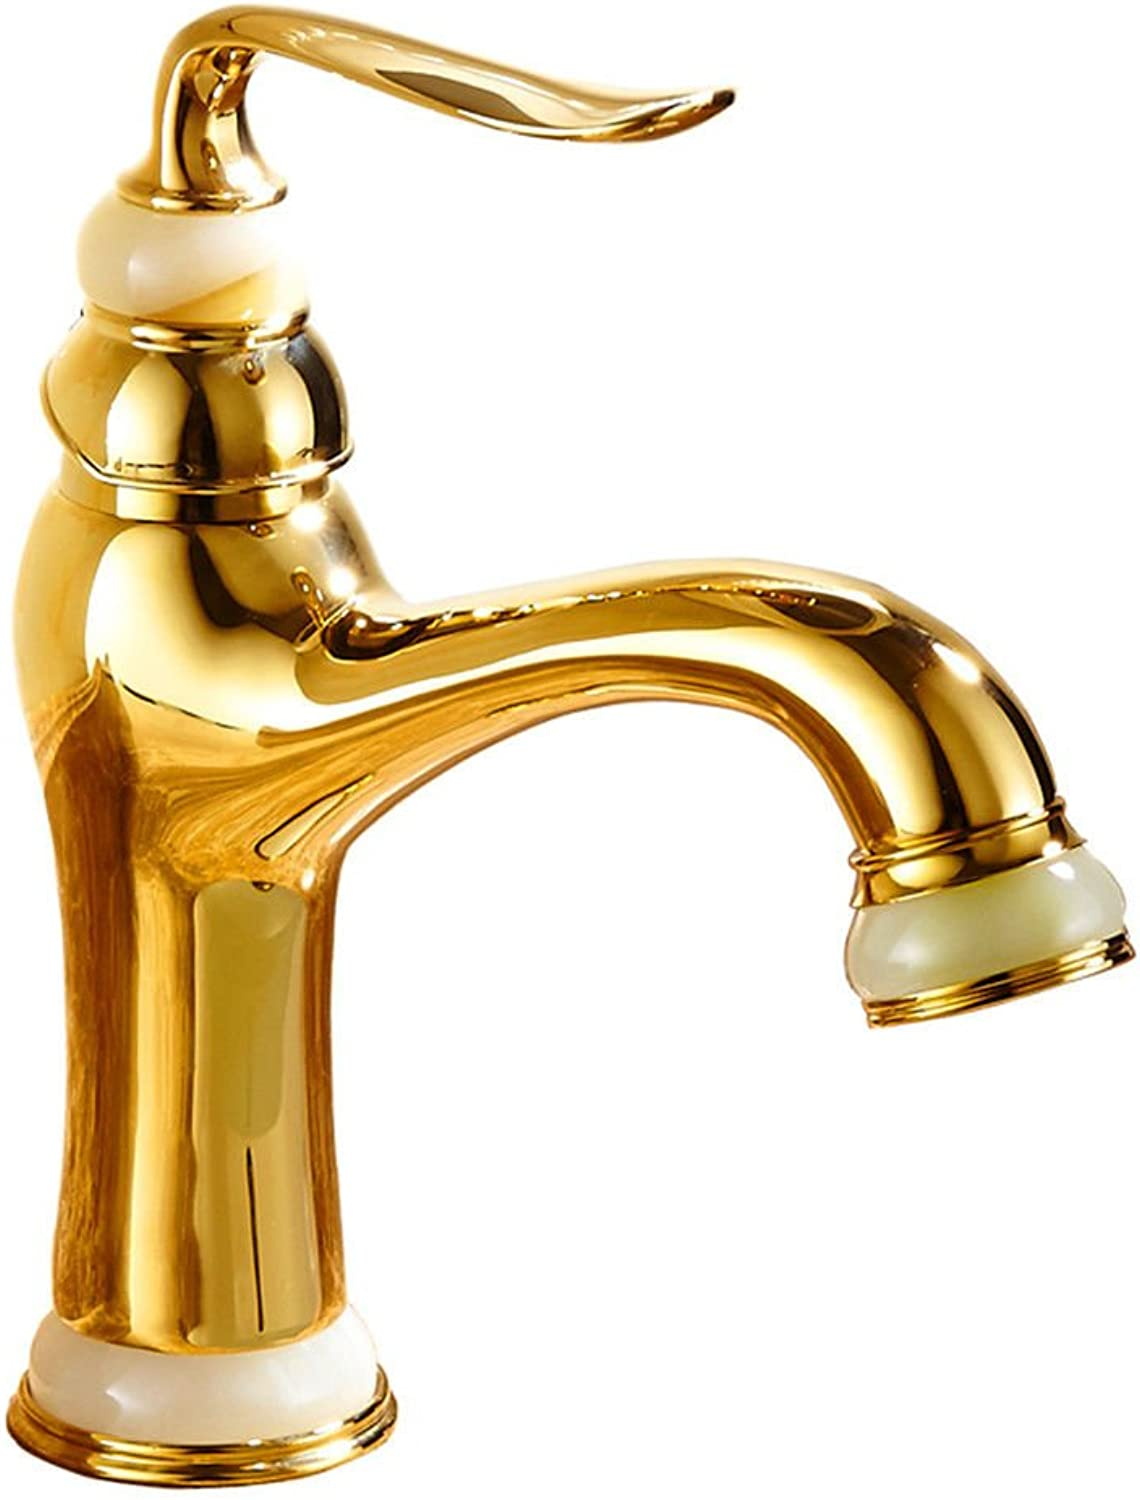 AQMMi Basin Taps Bathroom Sink Faucet Hot and Cold Water Brass Antique Bathroom Sink Faucet Basin Mixer Tap